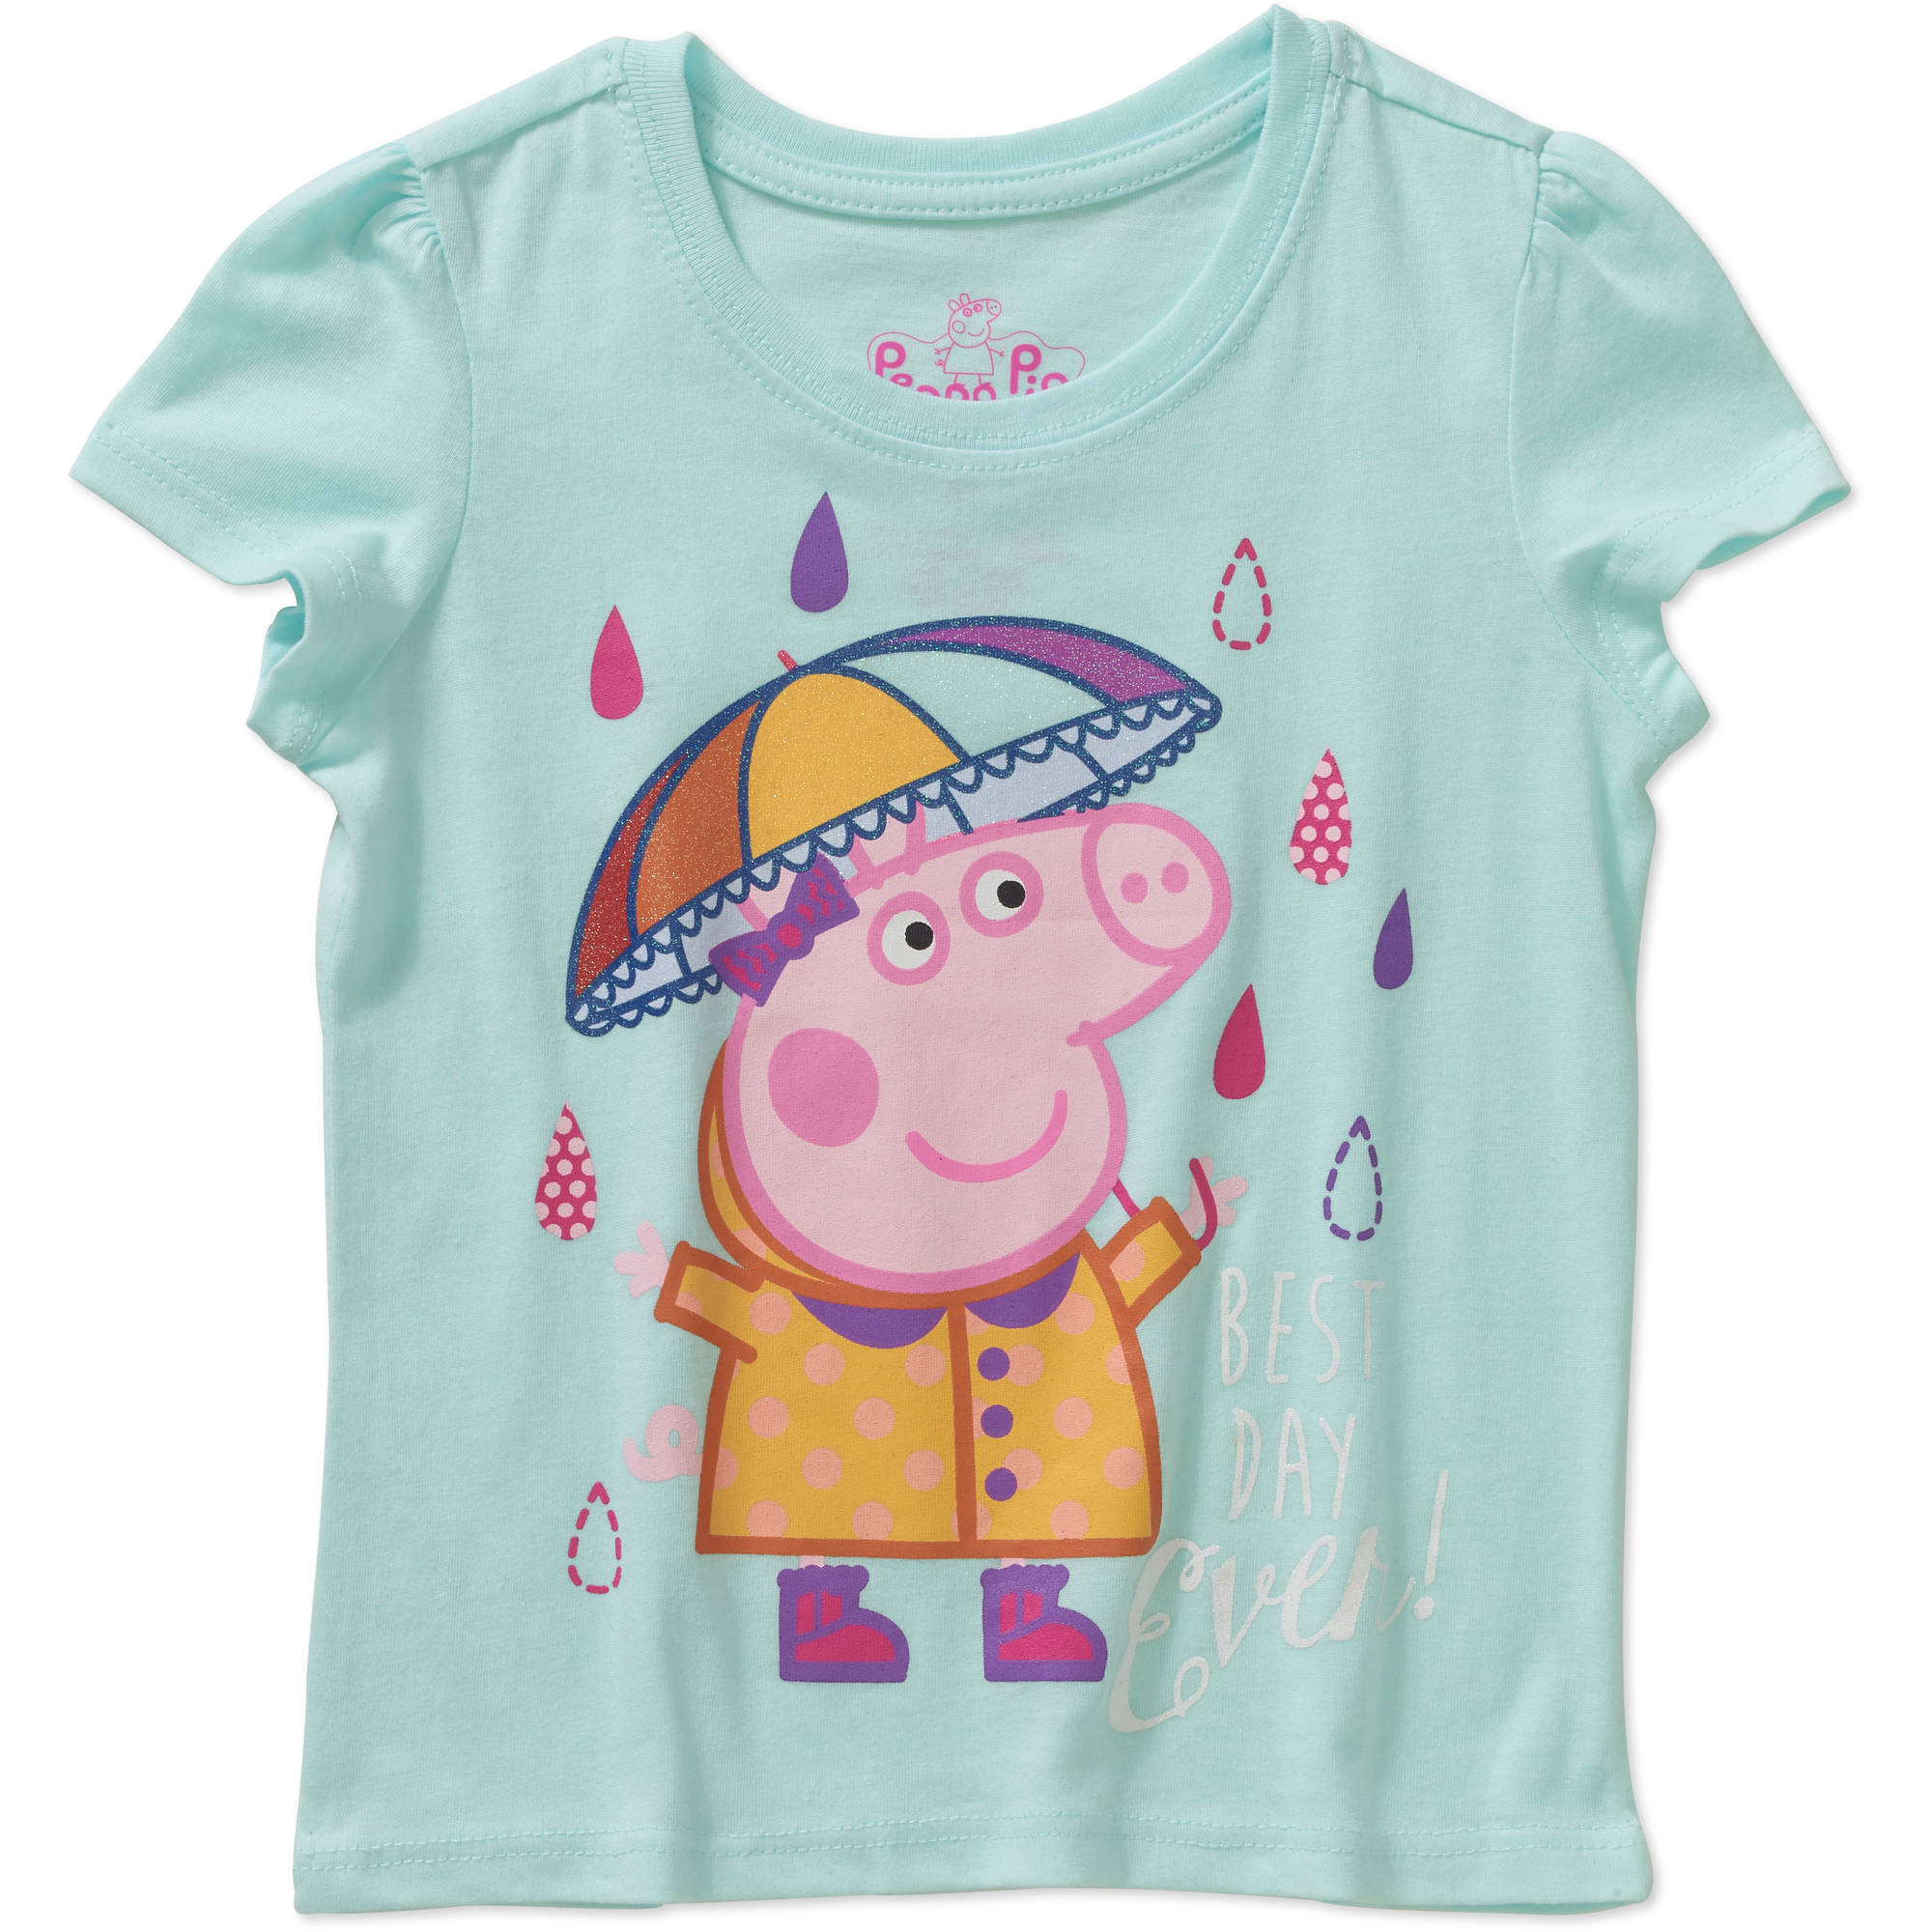 Peppa Pig Toddler Girls' Best Day Ever Short Sleeve Tee